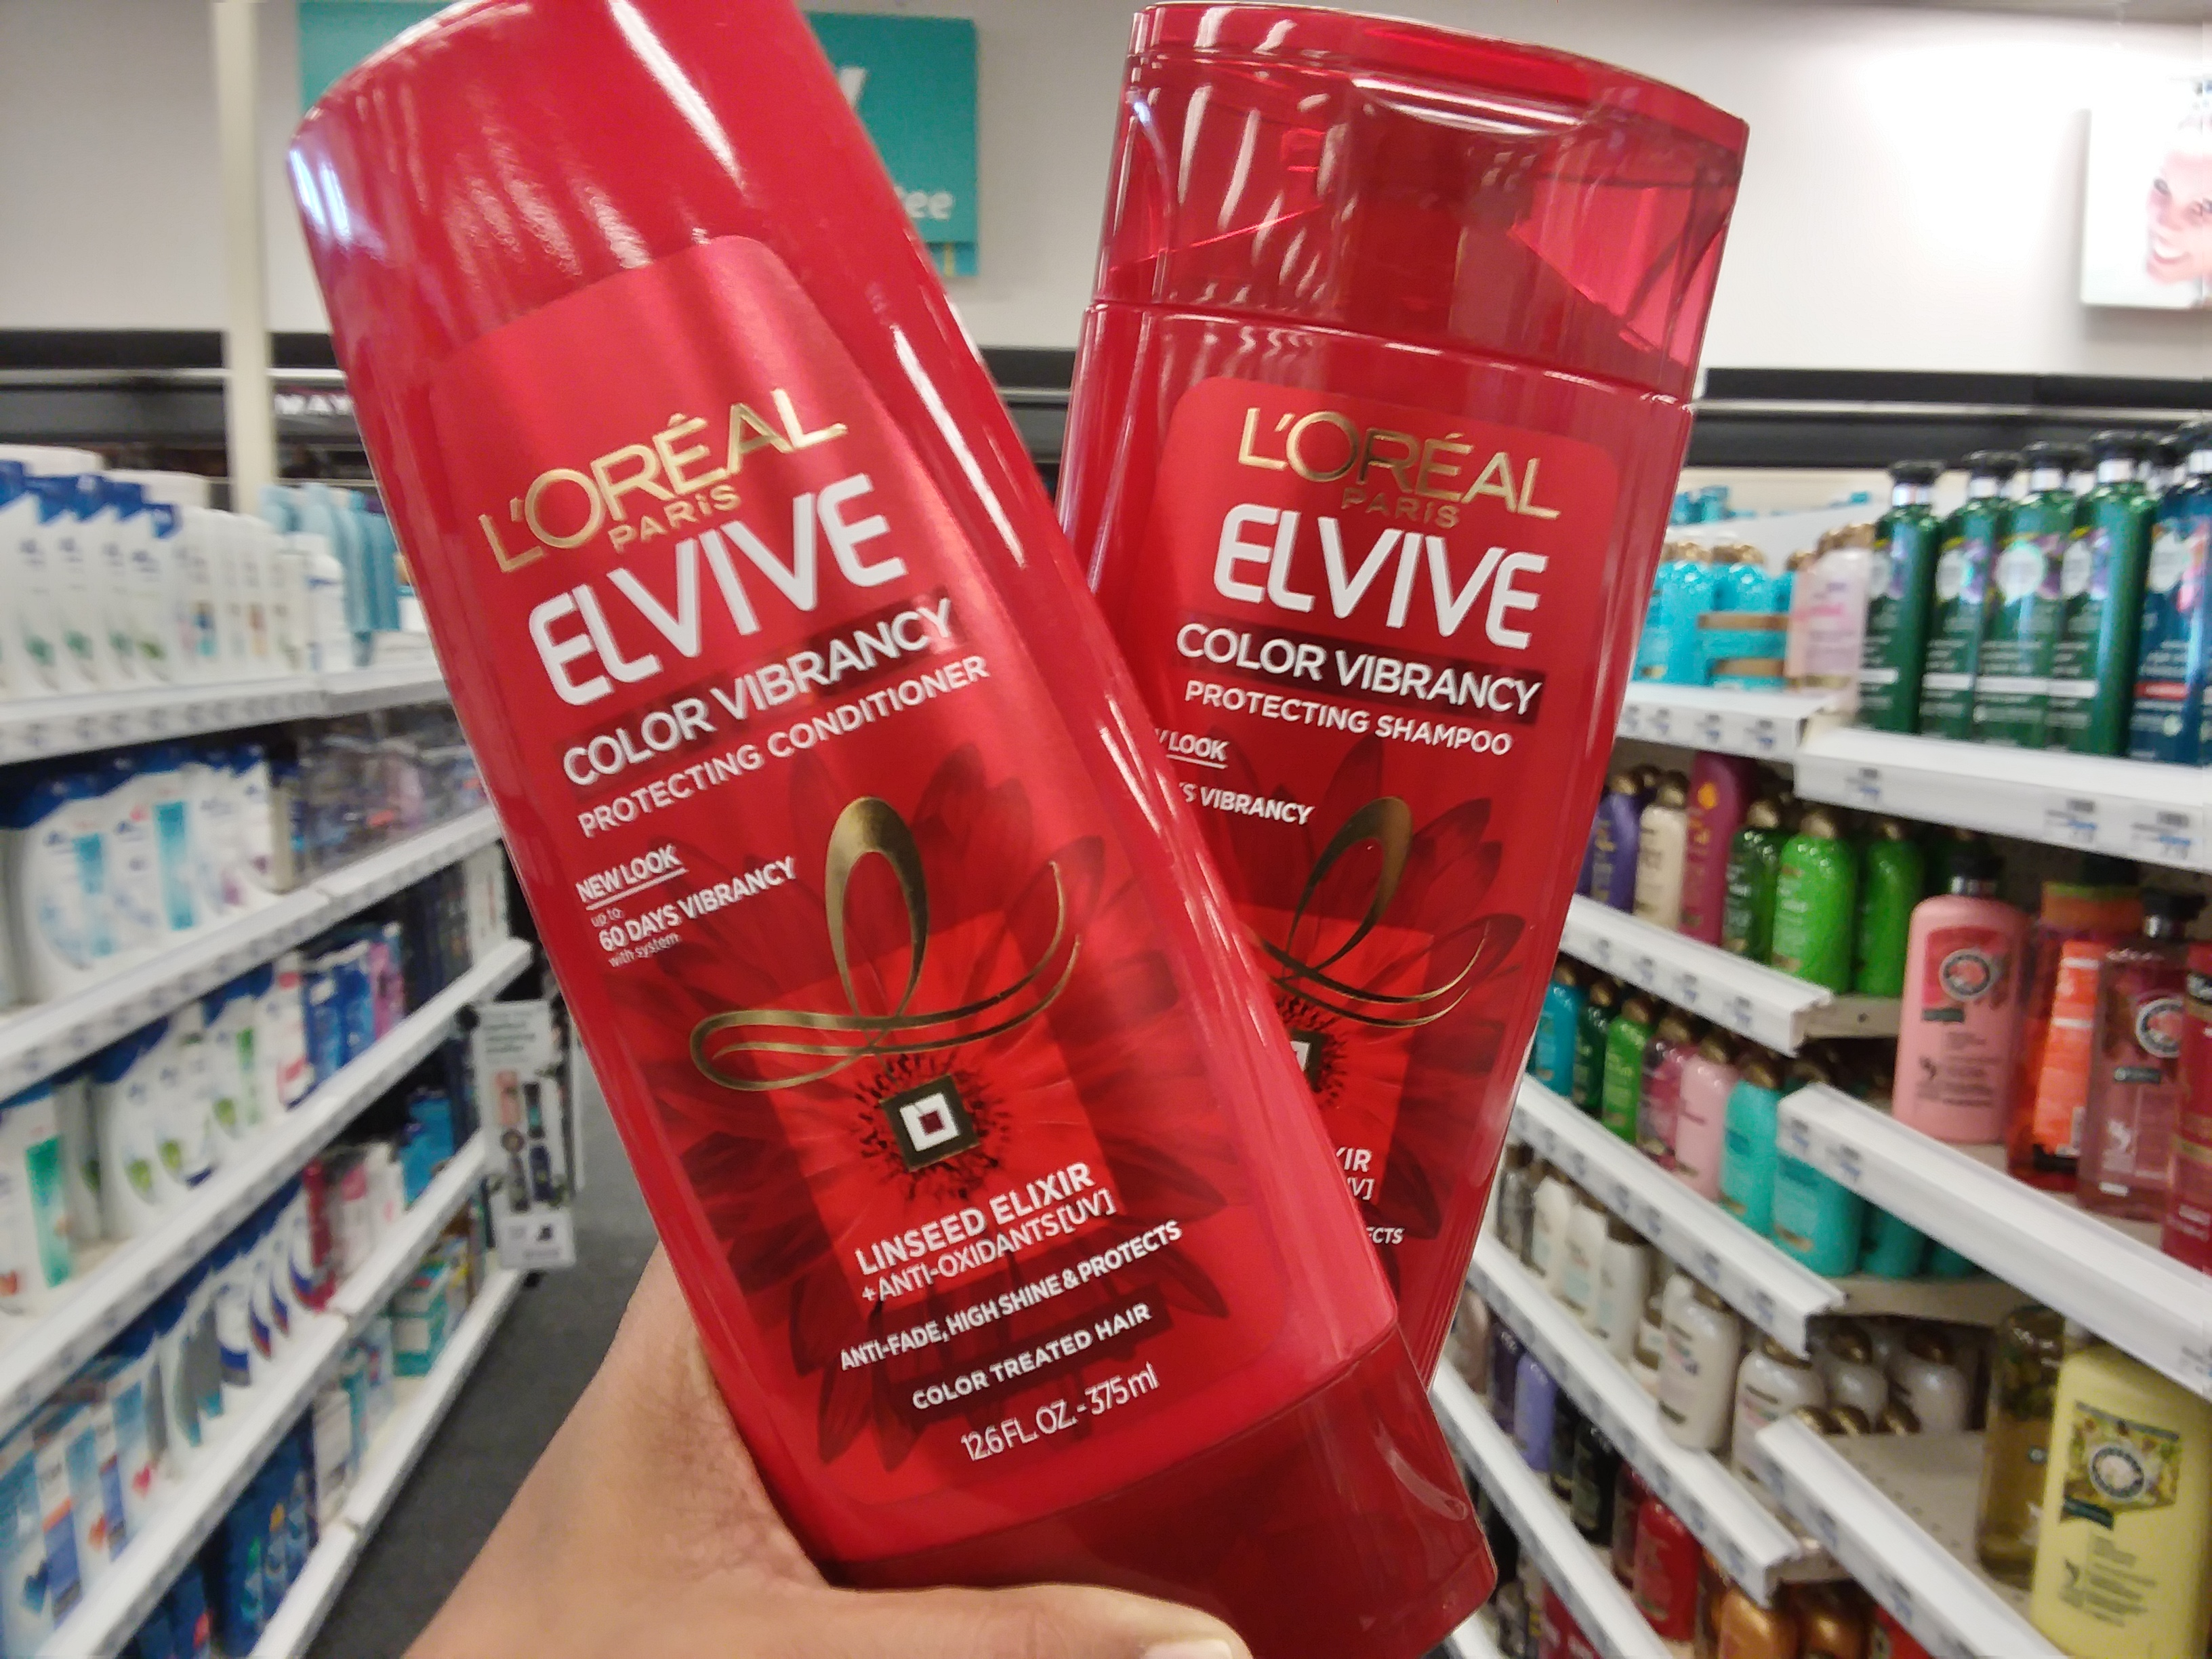 L'Oreal Elvive at CVS - Phillycouponmom.com